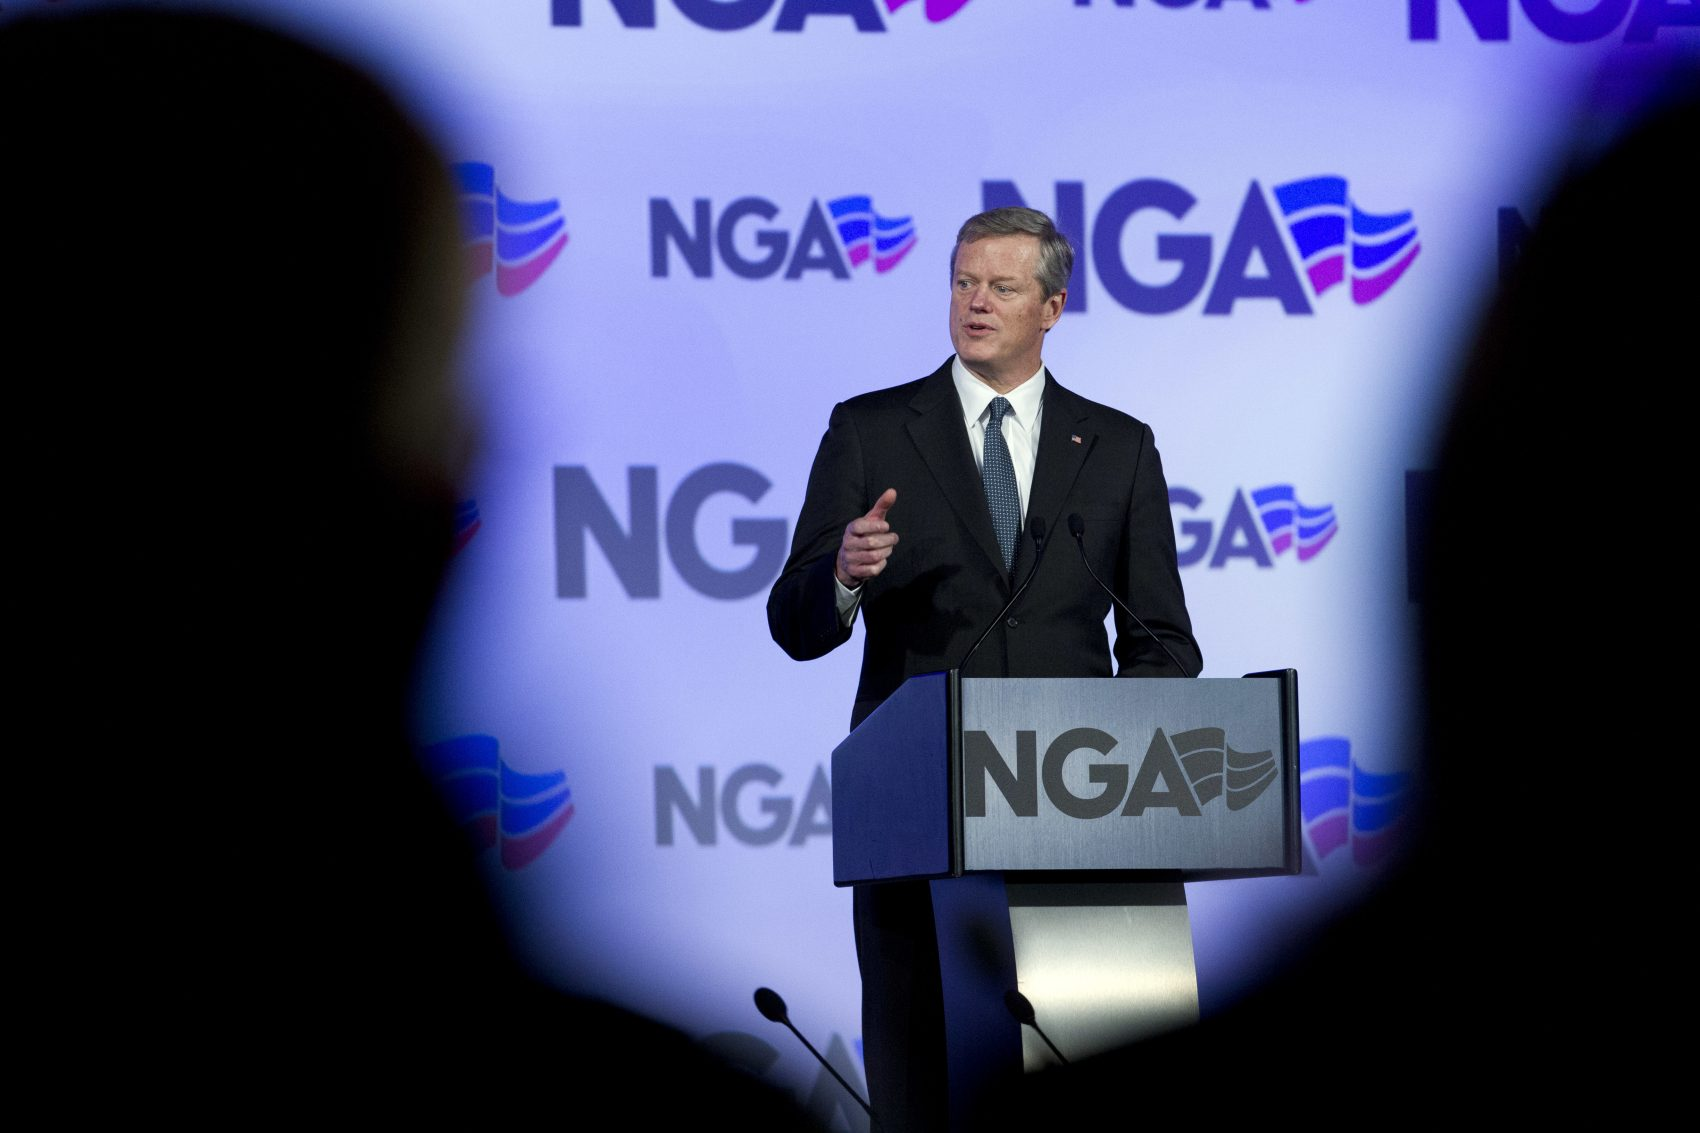 Two-thirds of Massachusetts voters view Gov. Charlie Baker favorably, per a new WBUR poll. (Jose Luis Magana/AP)